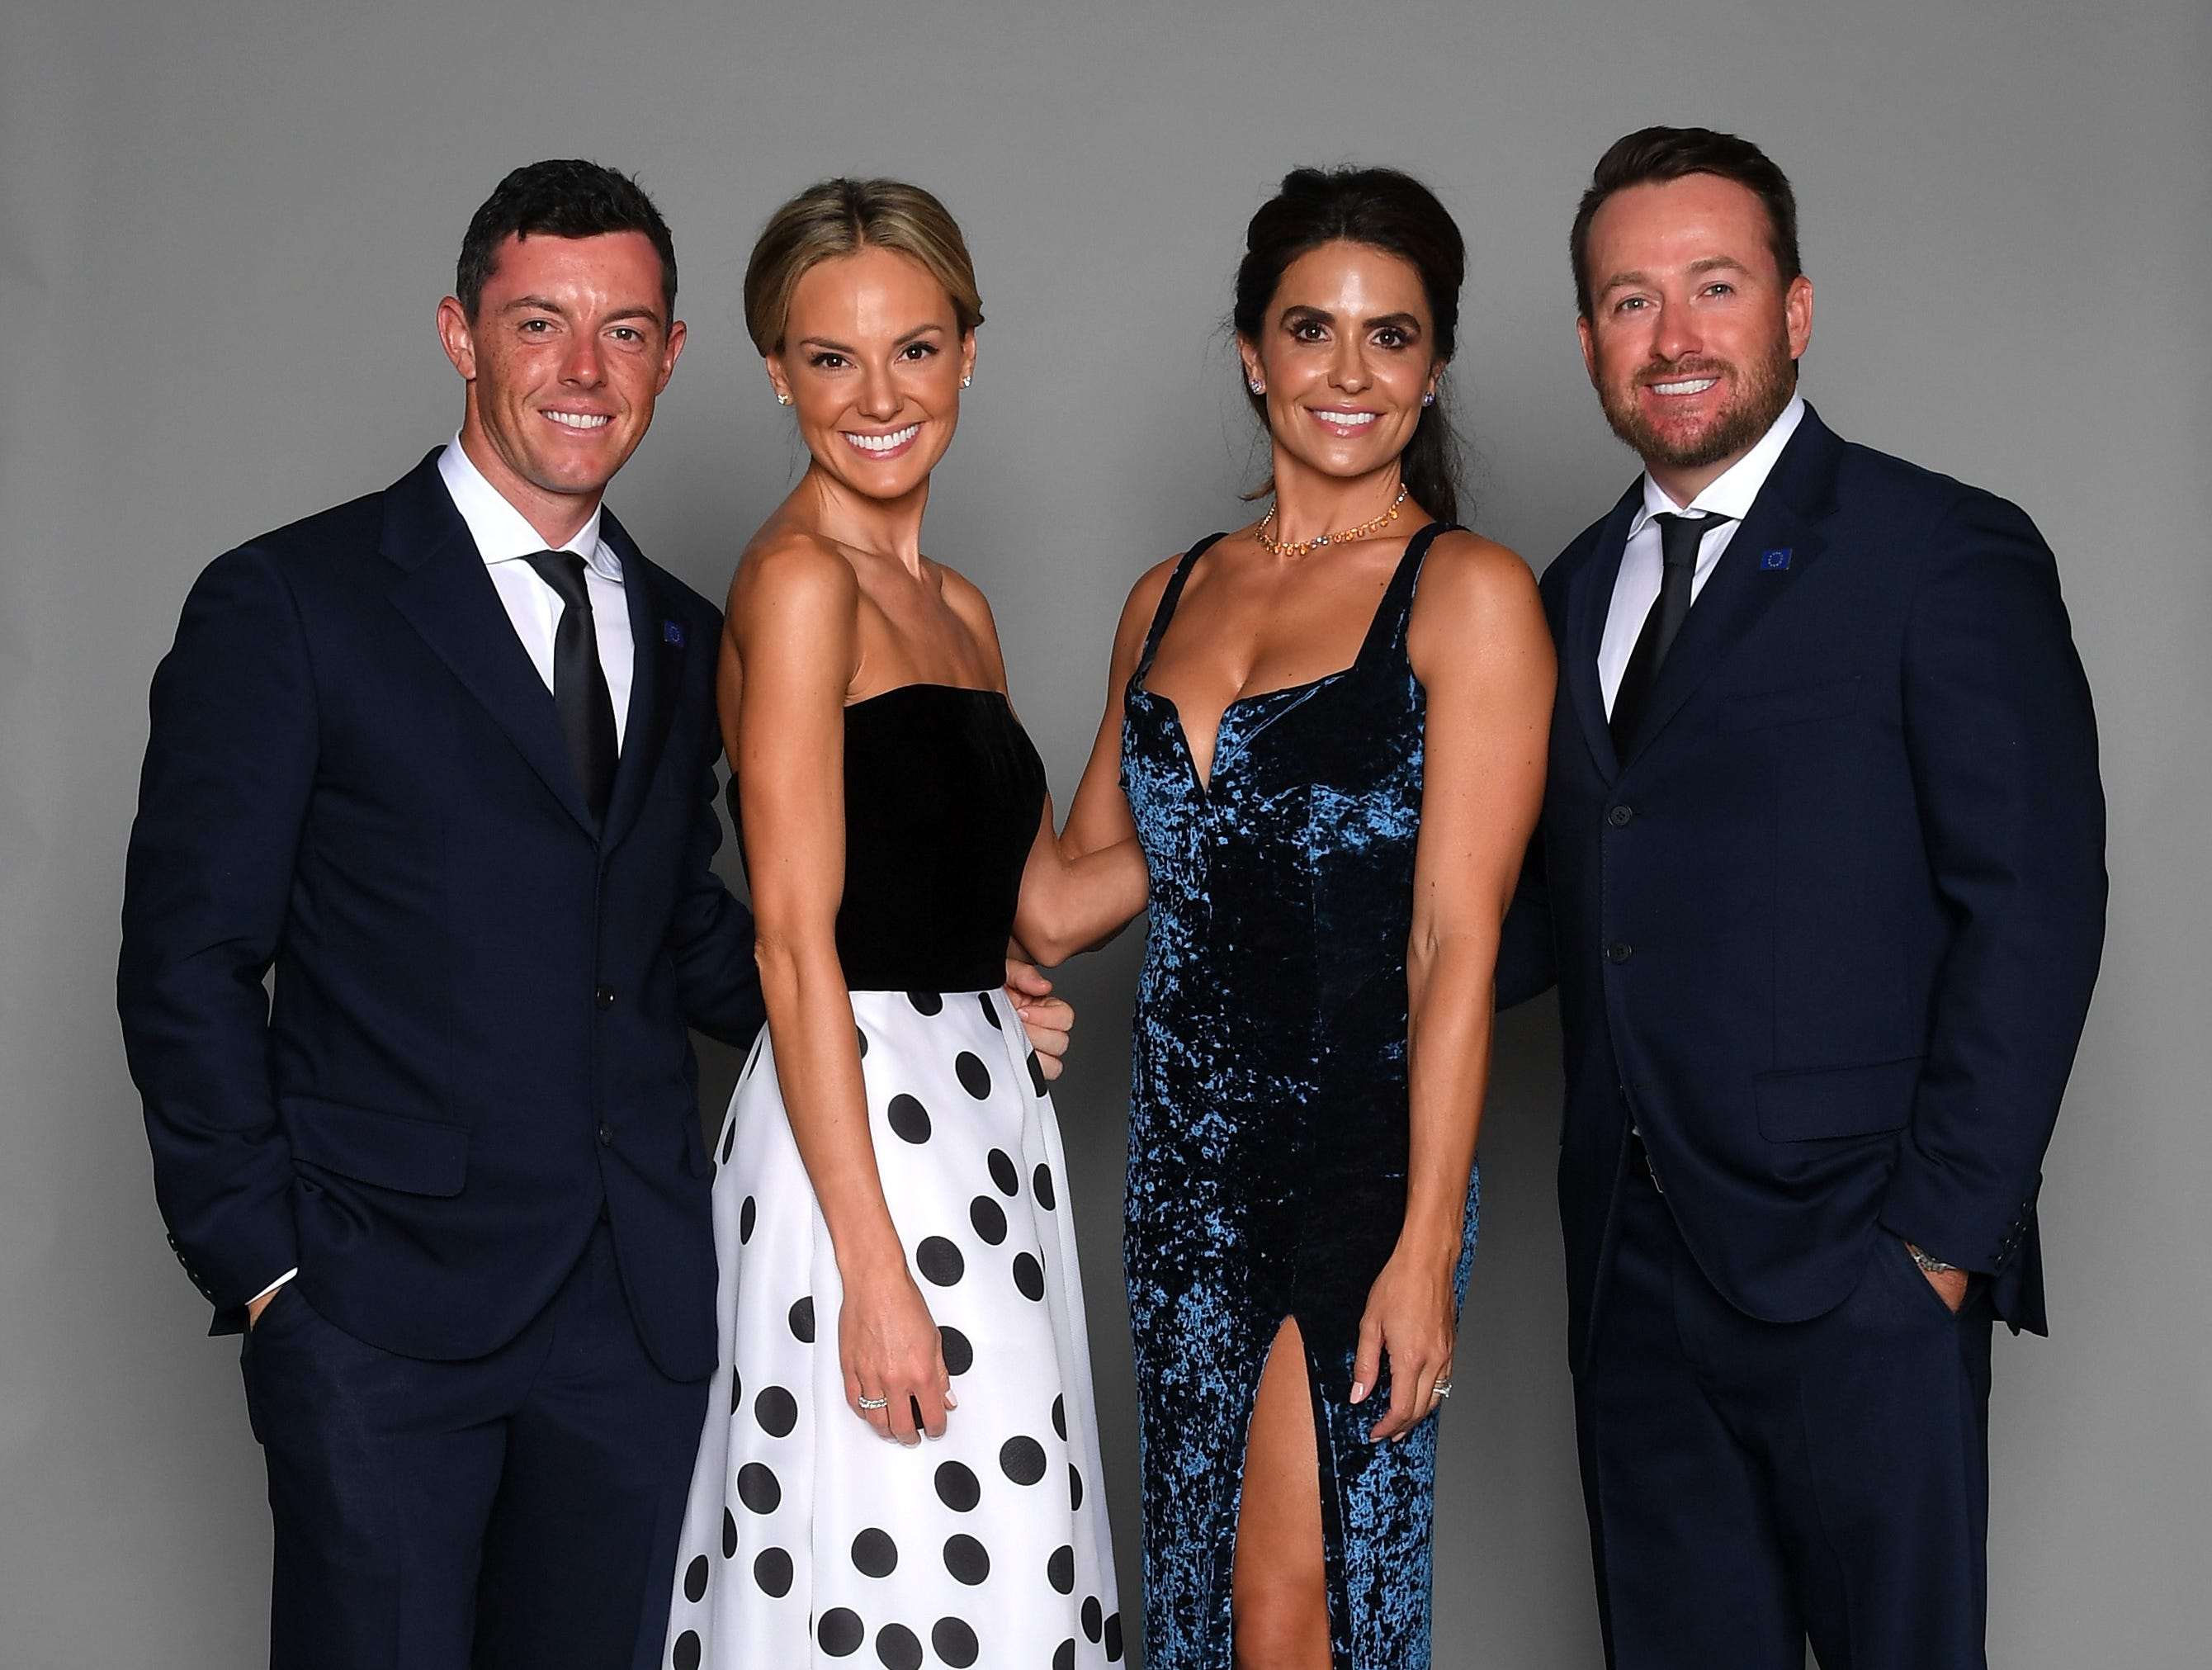 Rory McIlroy of Europe, wife Erica McIlroy, Kristin McDowell and Graeme McDowell of Europe pose for a portrait before the gala.